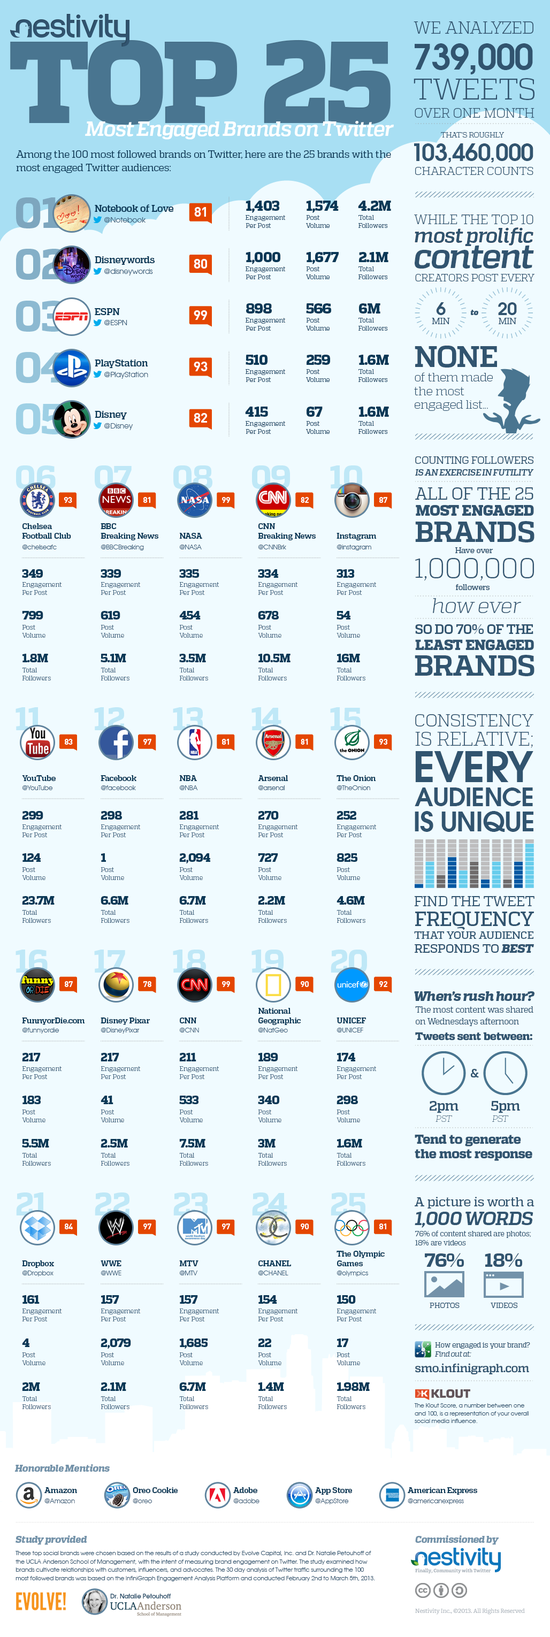 Top 25 Most Engaged Brands On Twitter - Nestivity